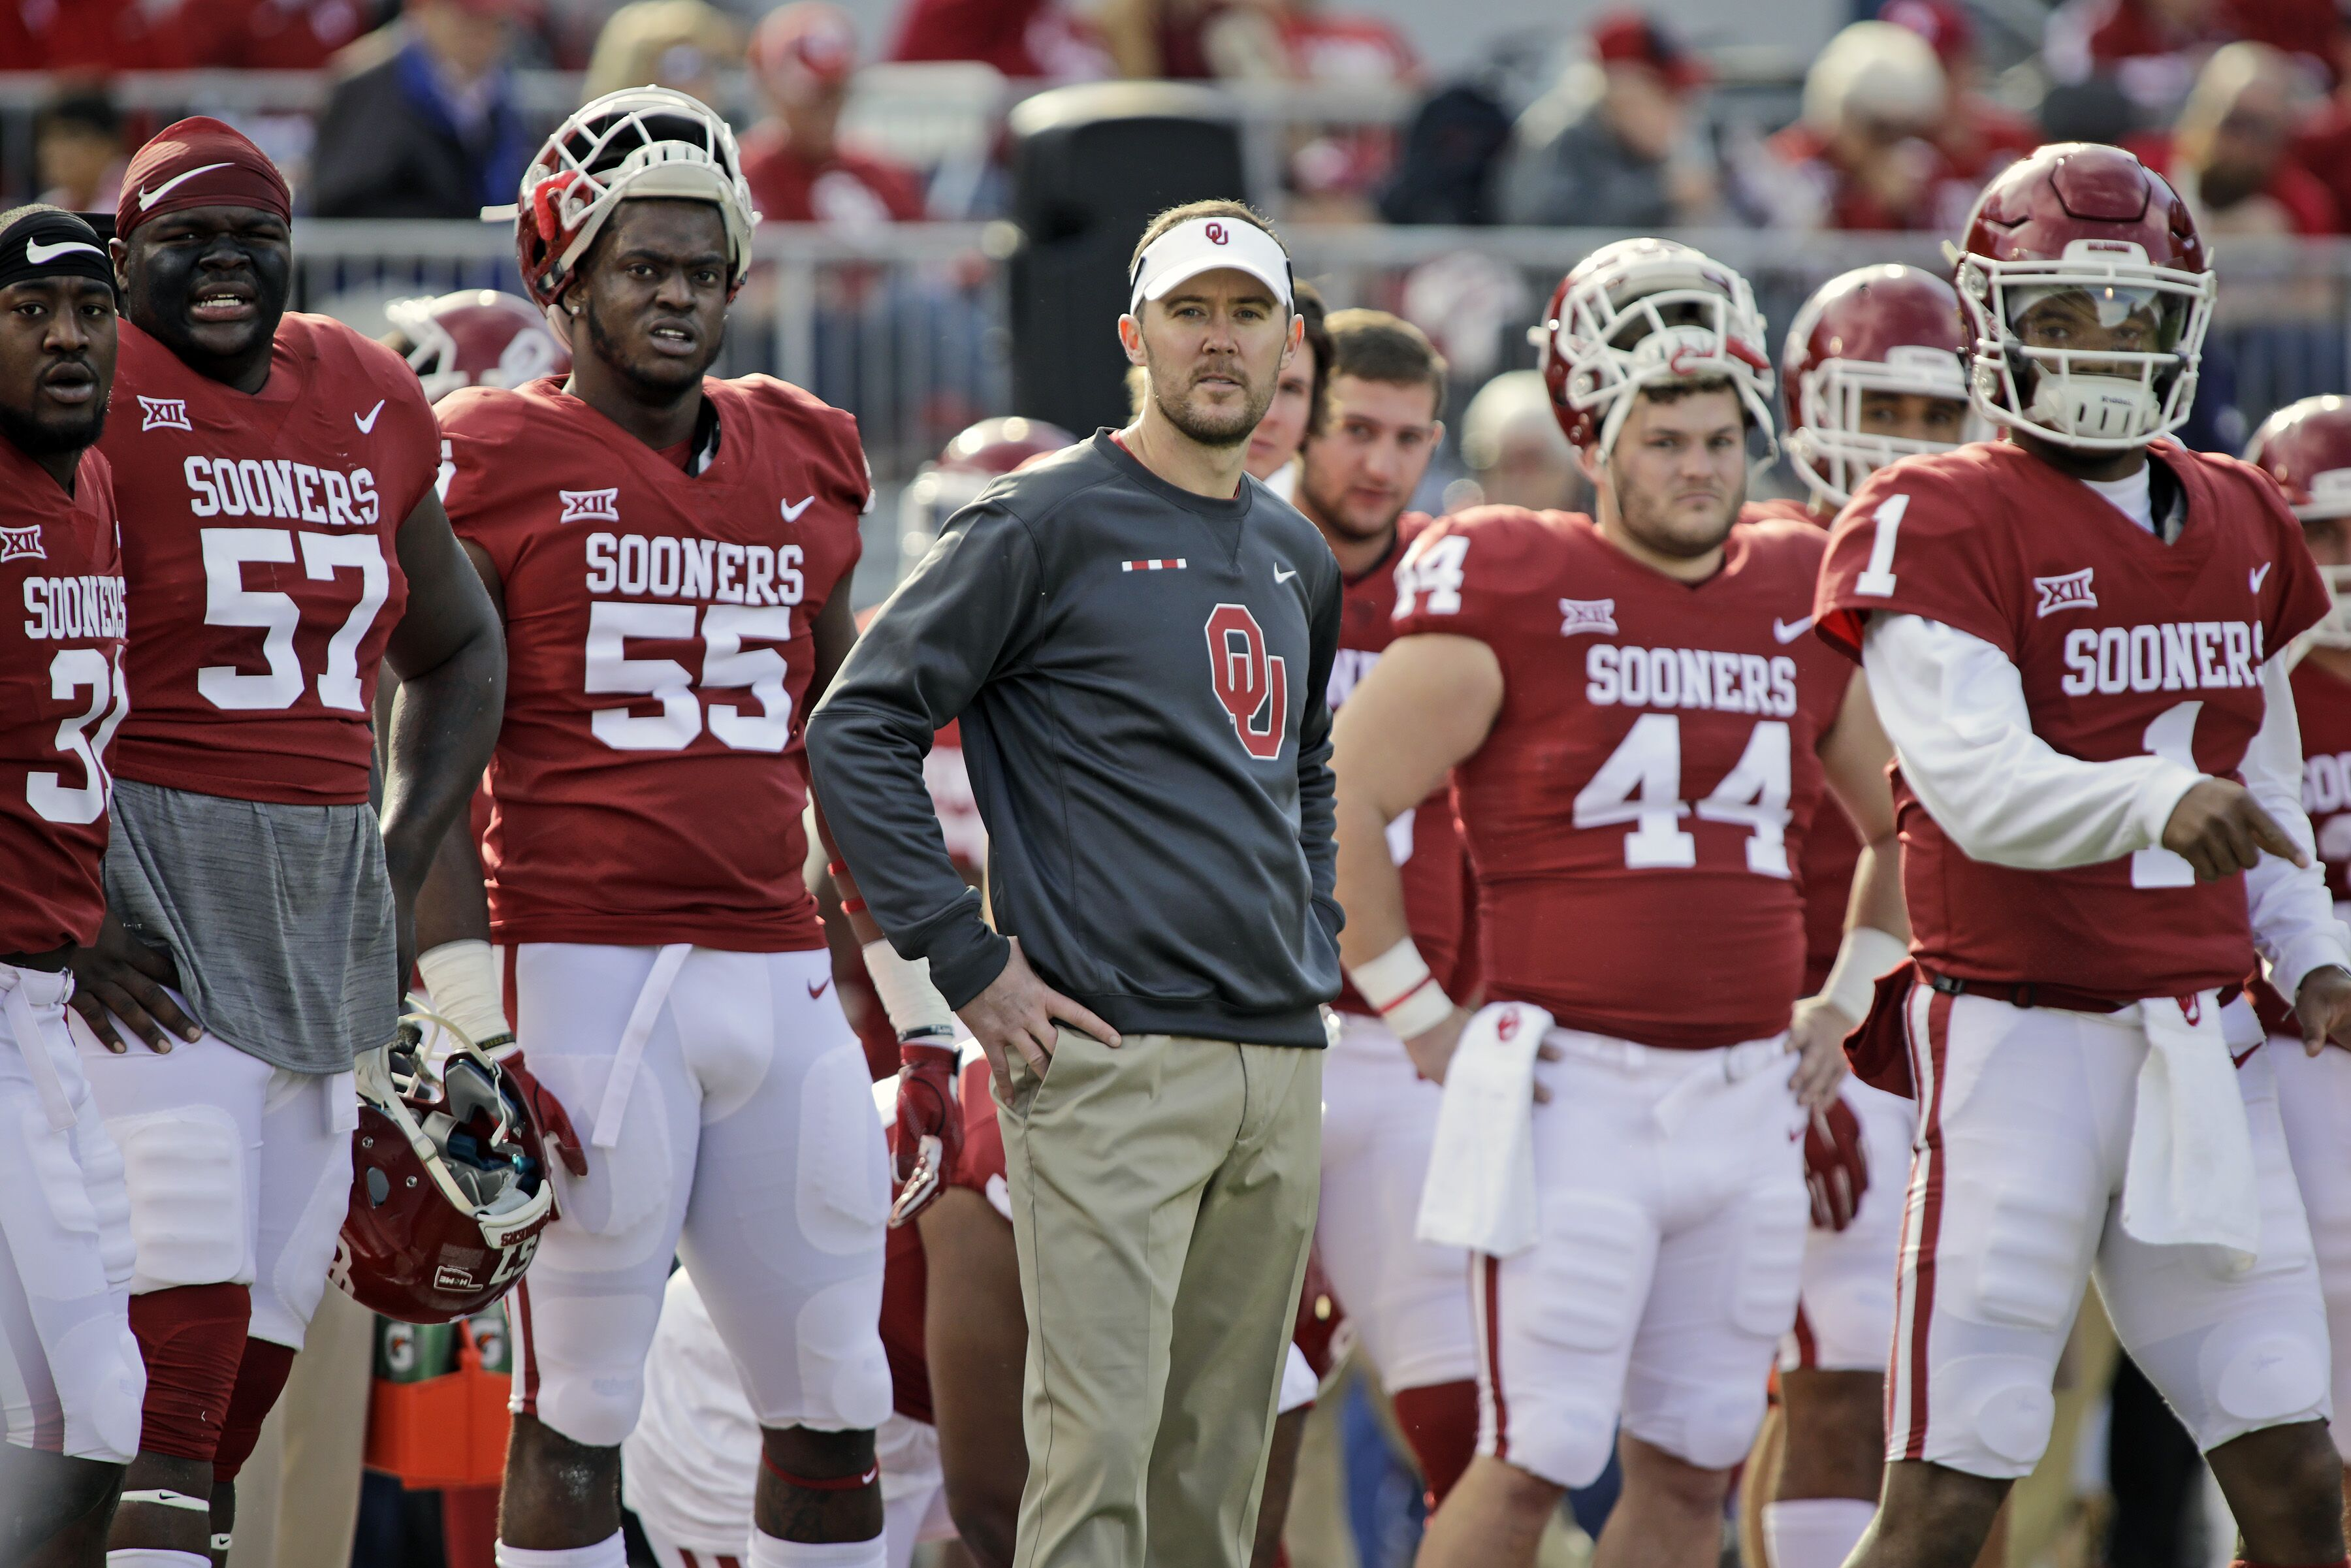 Oklahoma football: Refuting a silly hot take on Lincoln Riley